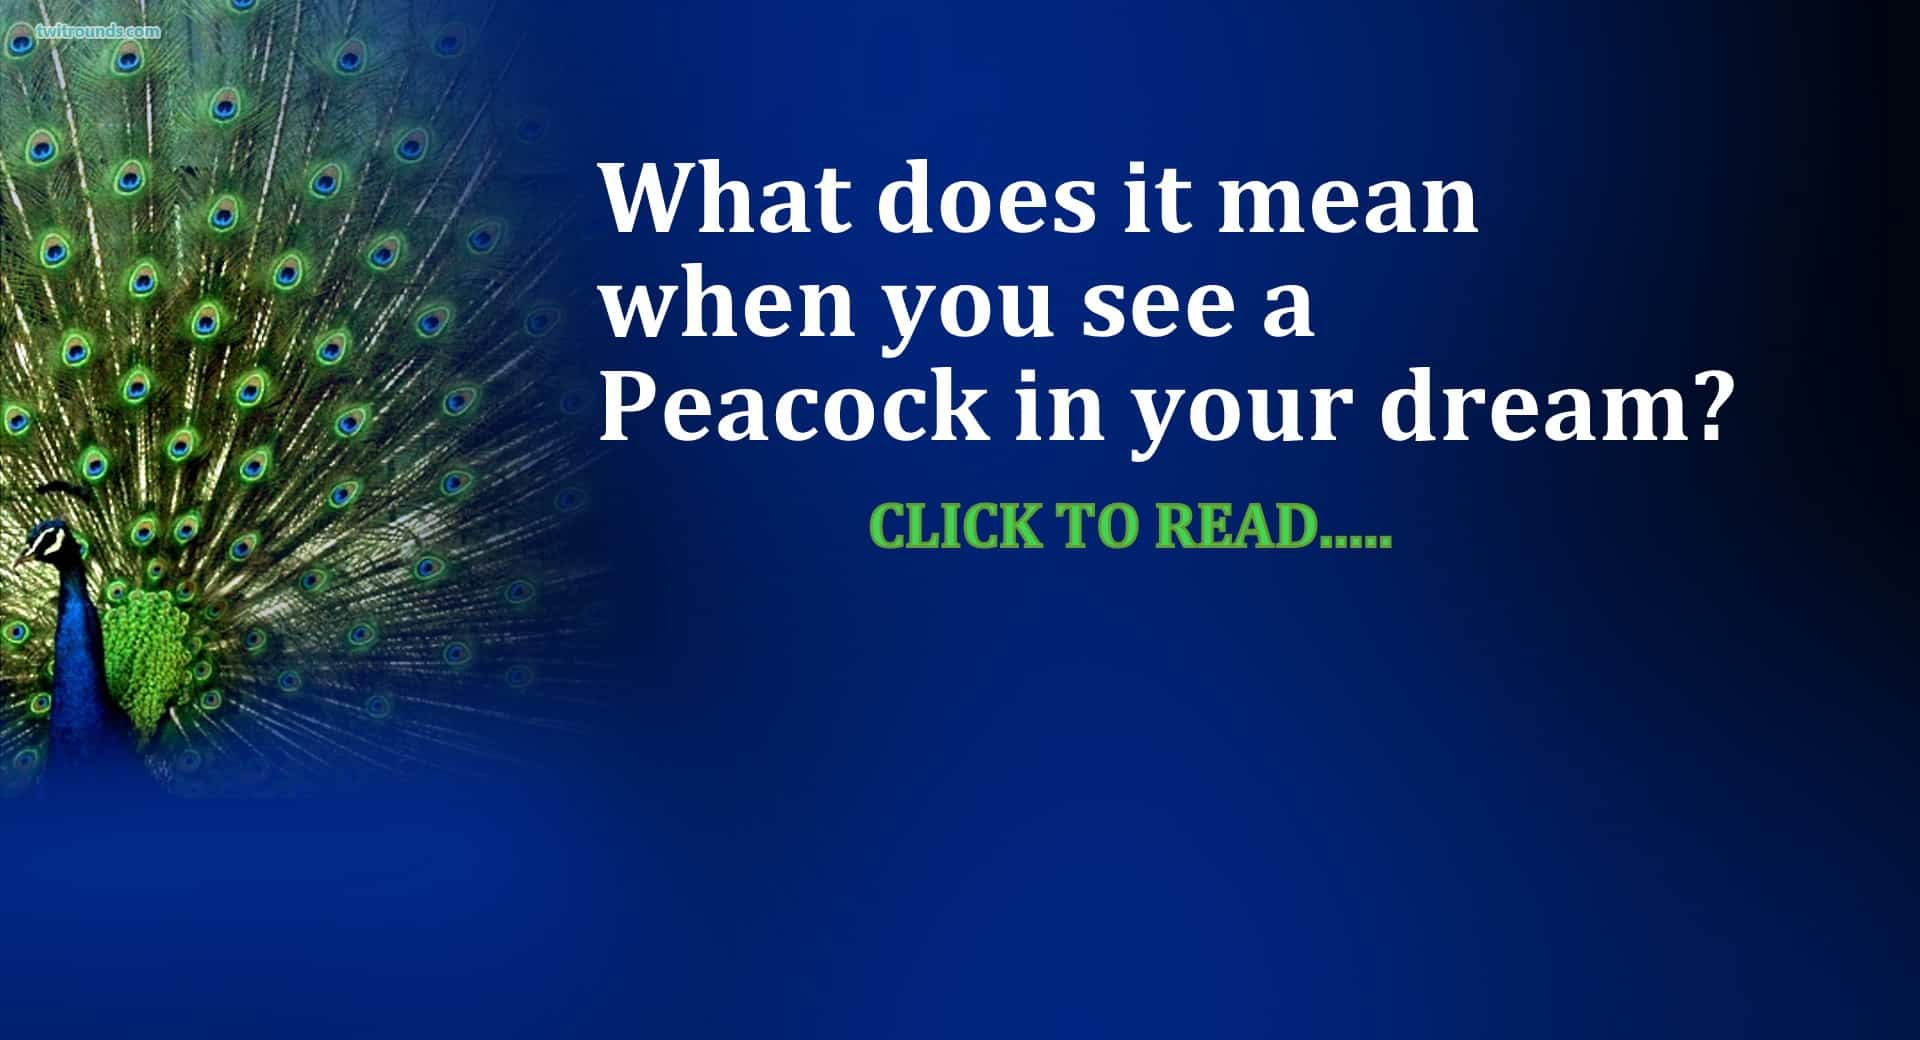 21 peacock dream meaning life in vedas biocorpaavc Images